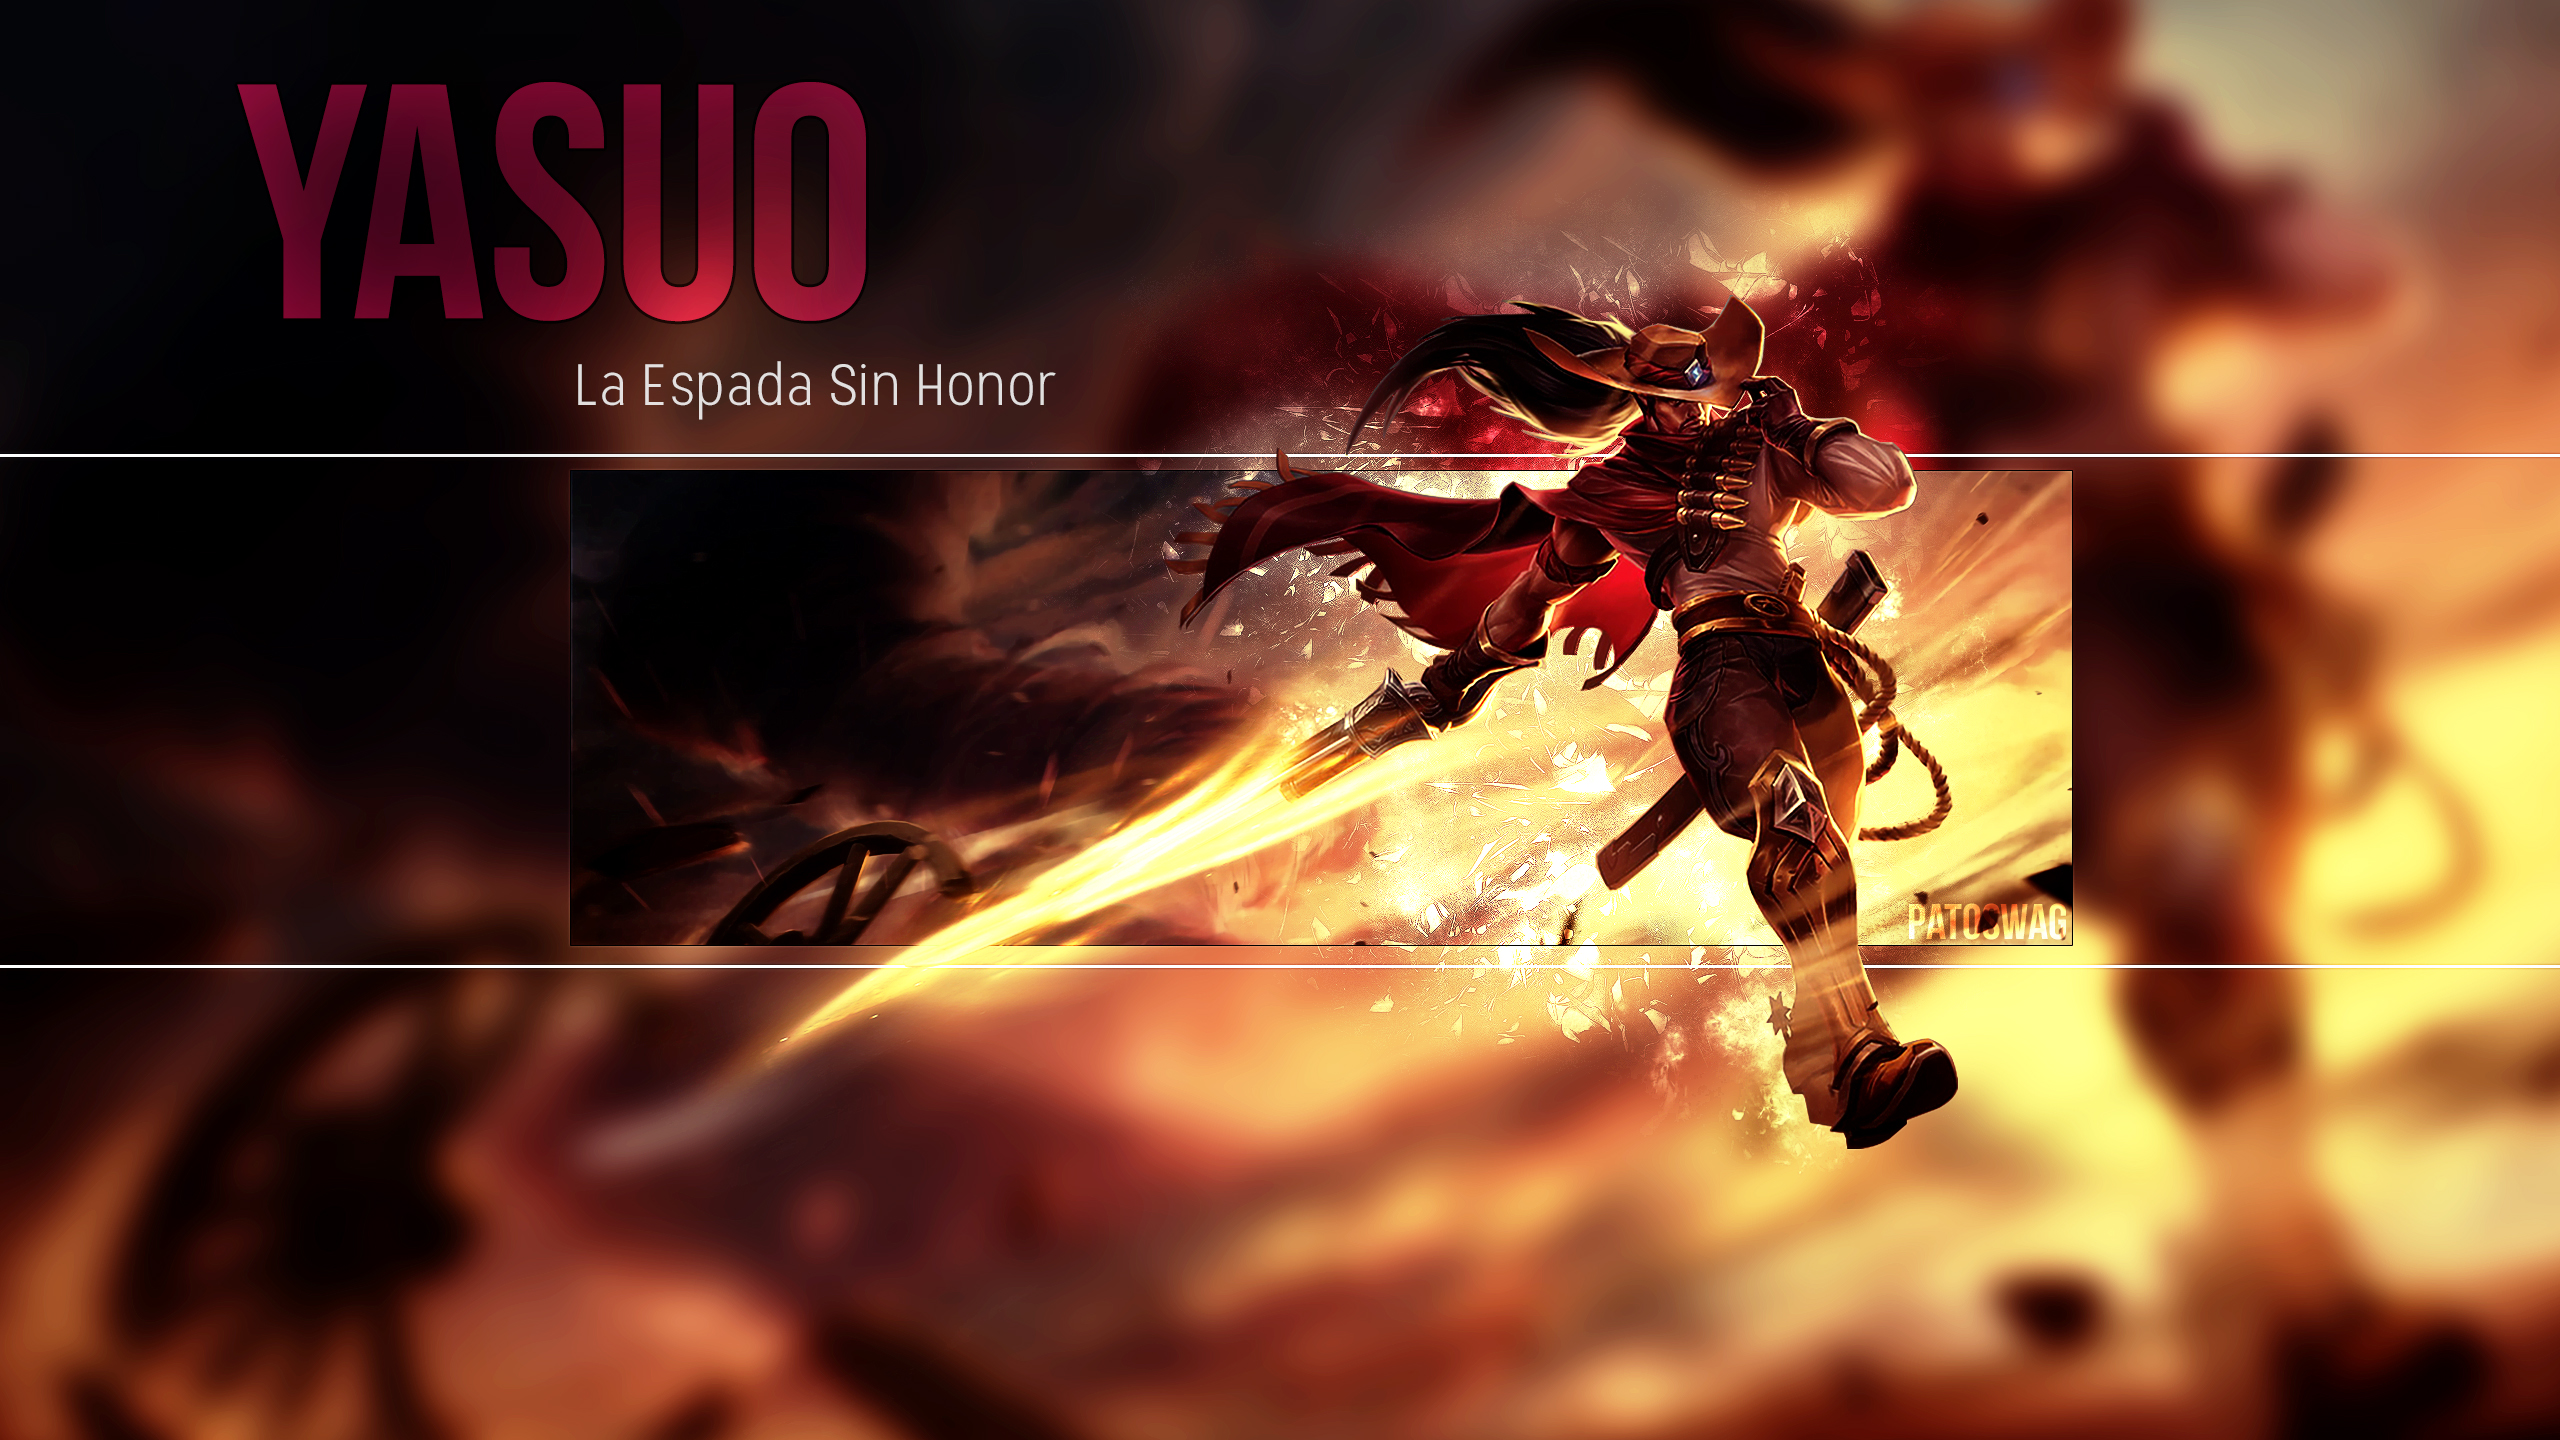 Yasuo Wallpaper League of Legends by PatoSwag on DeviantArt